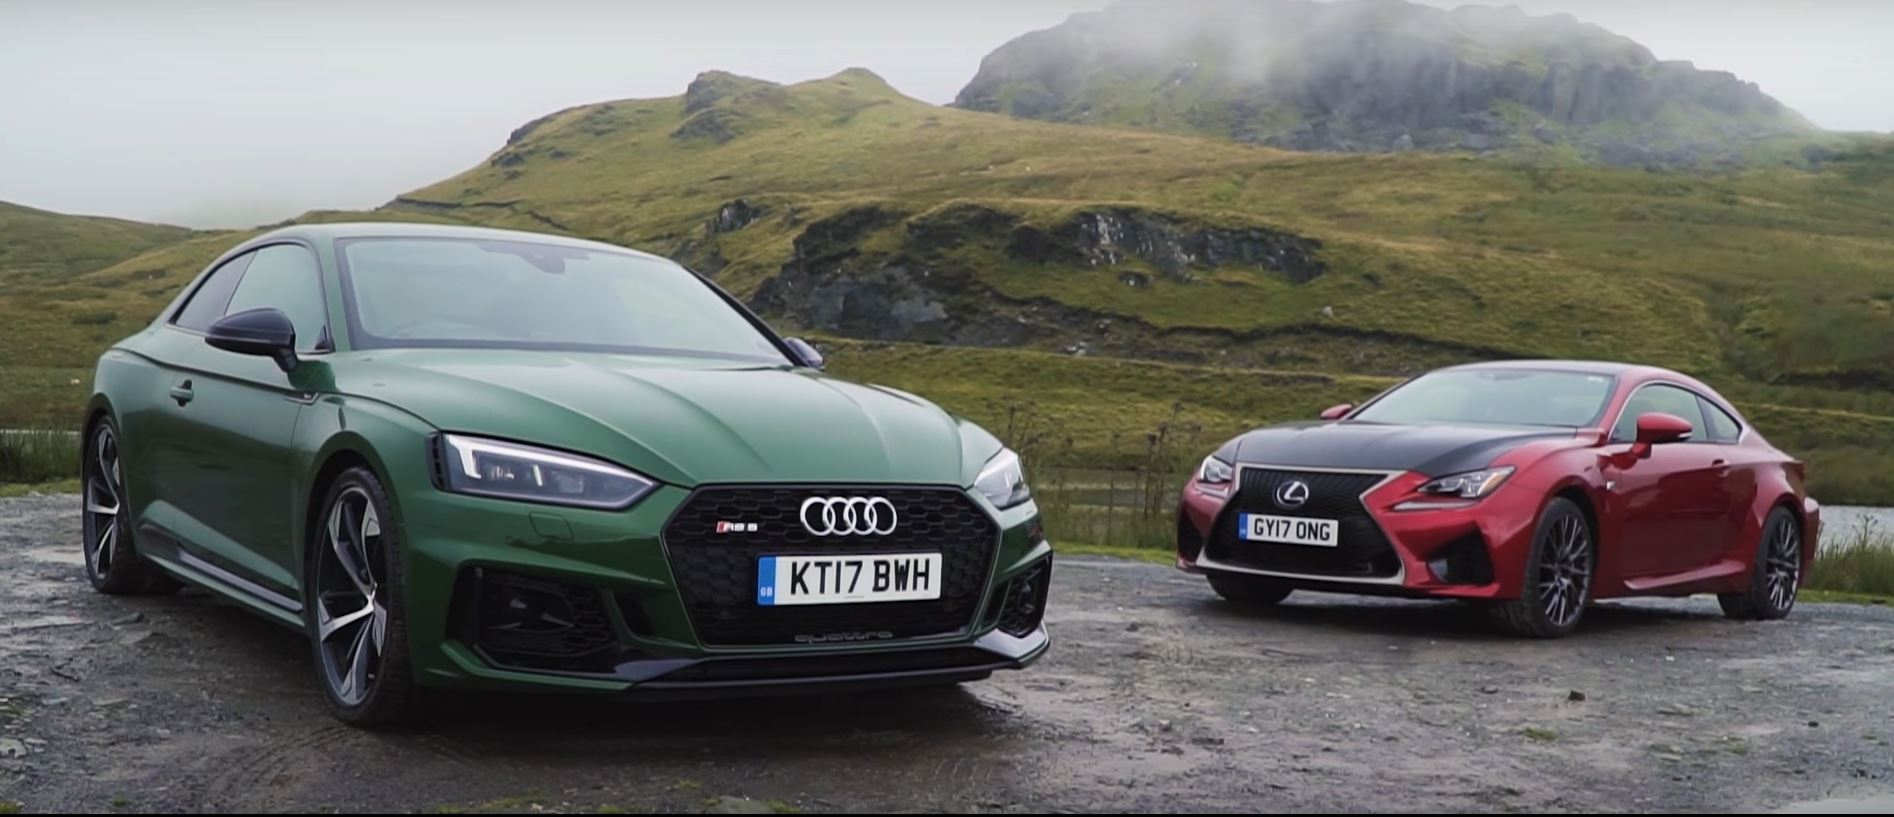 audi rs5 vs lexus rc f comparison reveals flaws in both. Black Bedroom Furniture Sets. Home Design Ideas